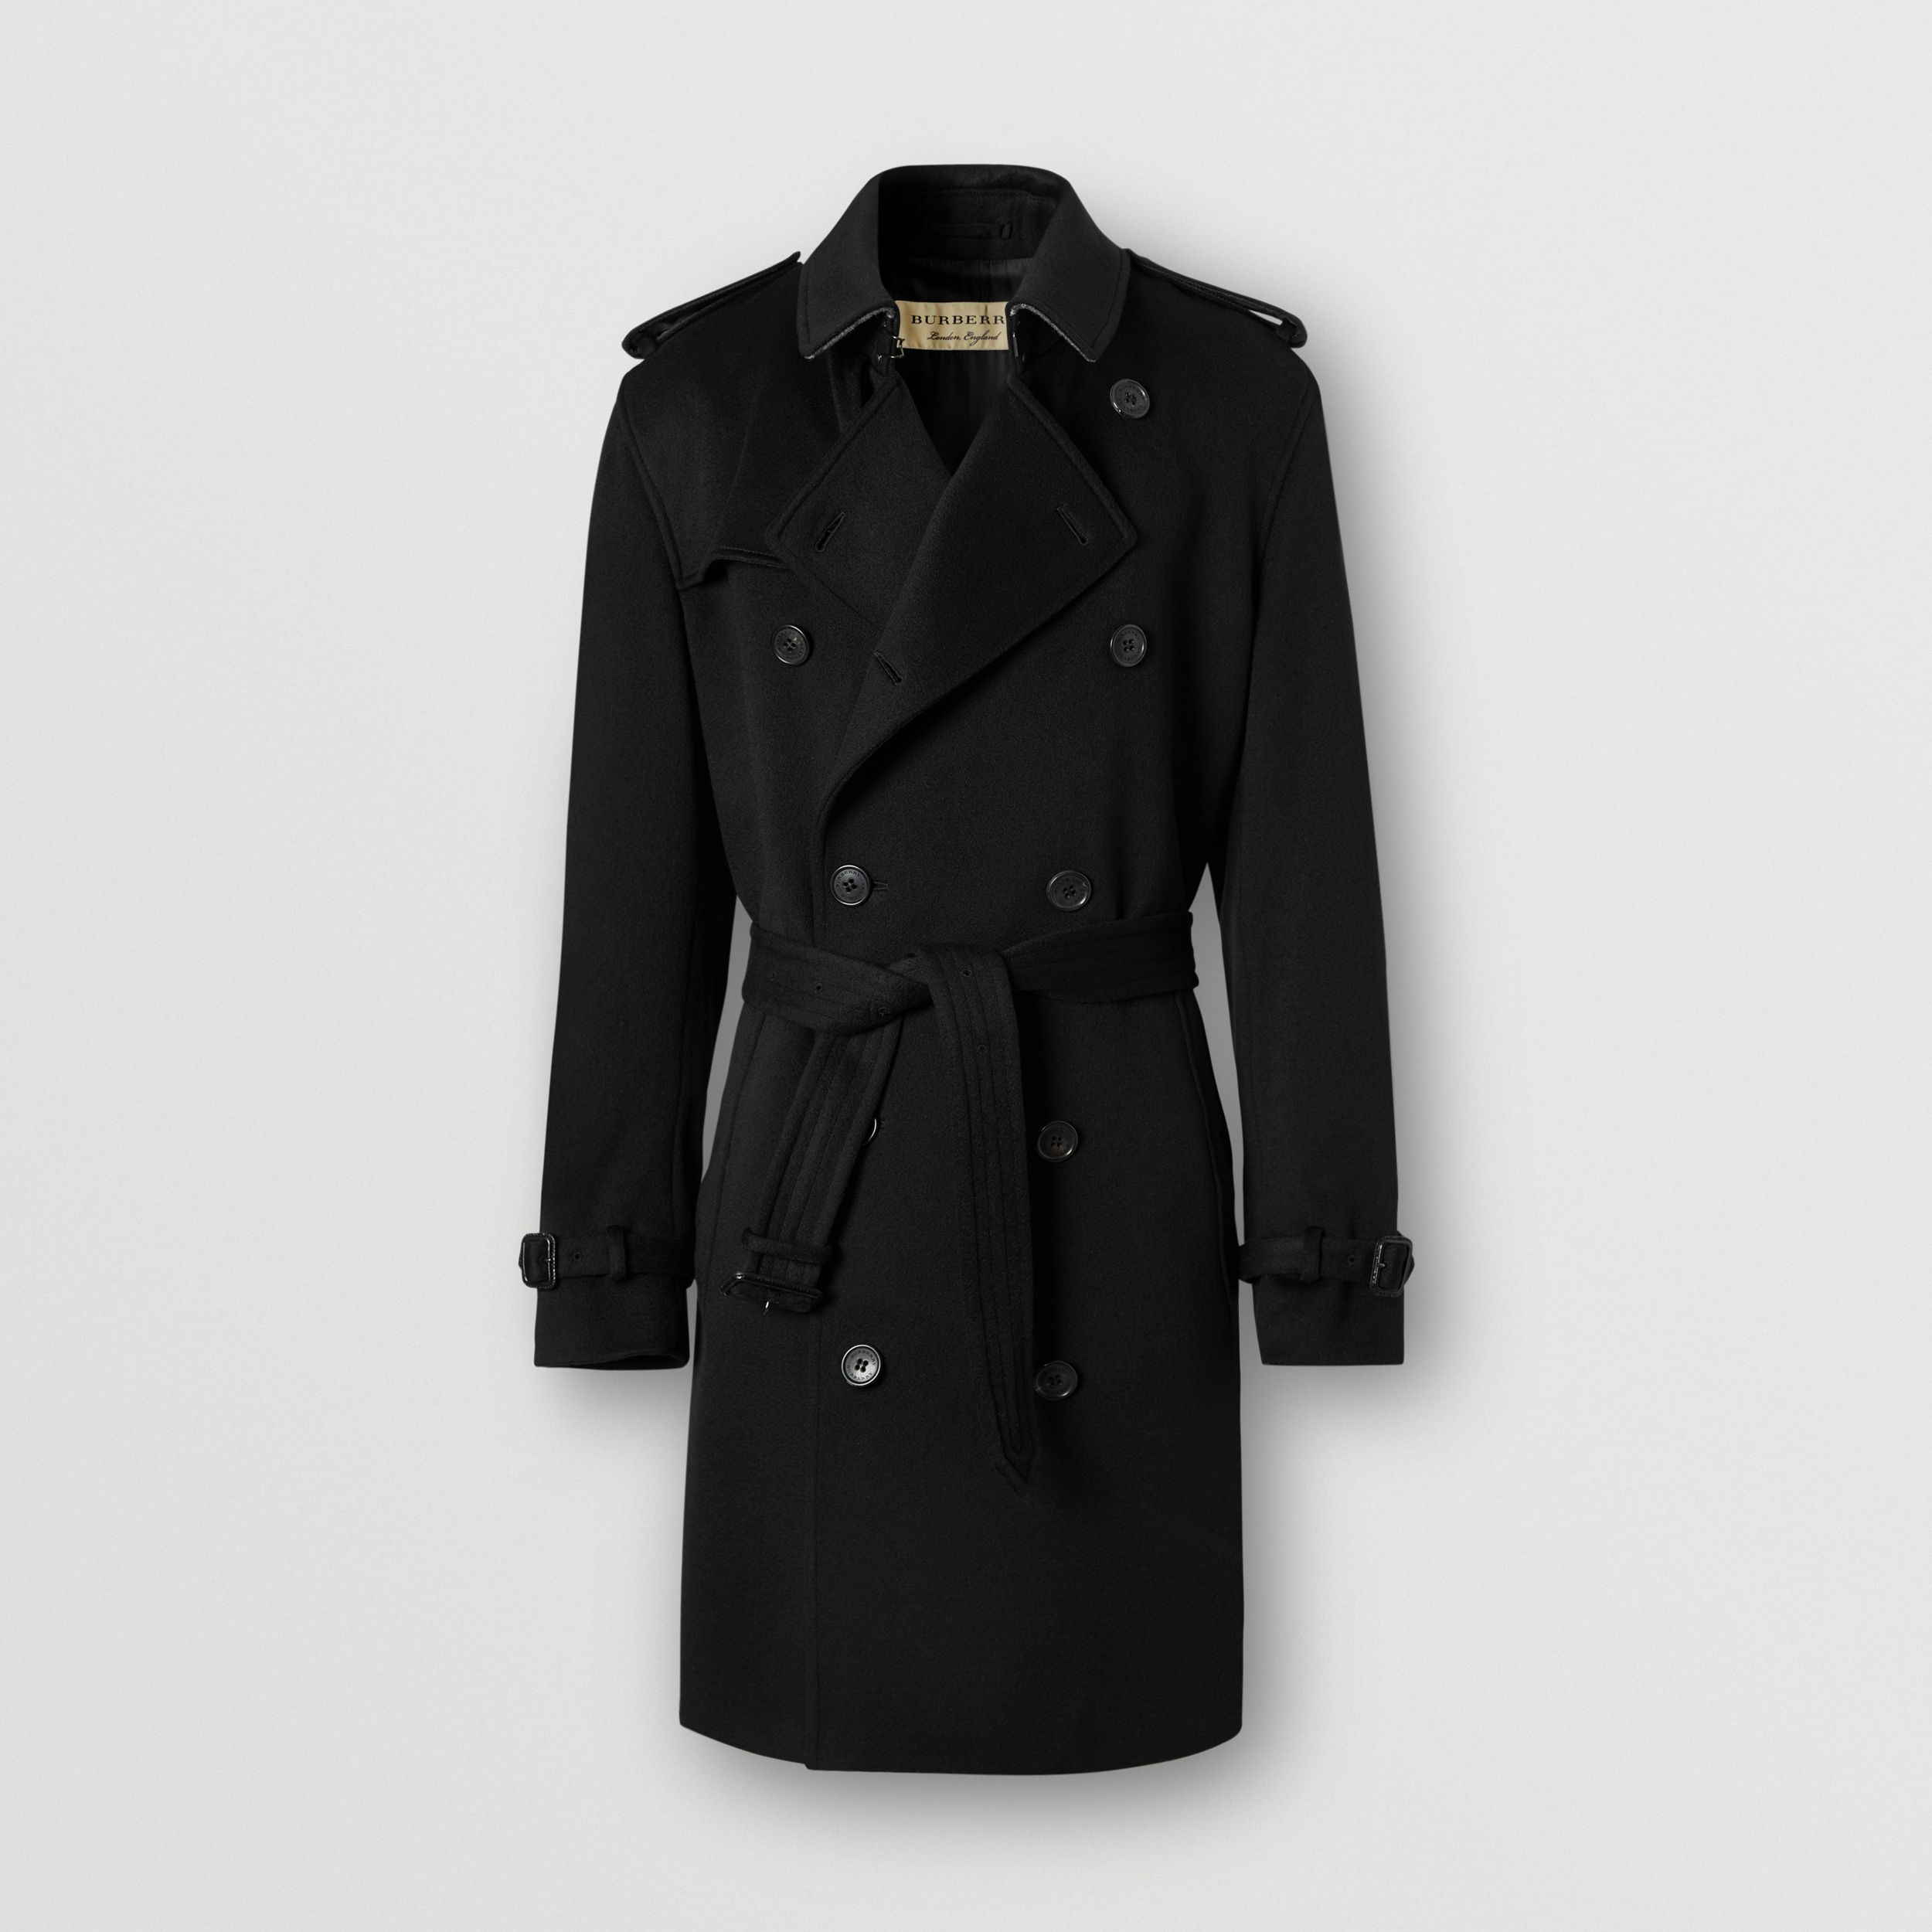 Cashmere Trench Coat in Black - Men | Burberry - 4